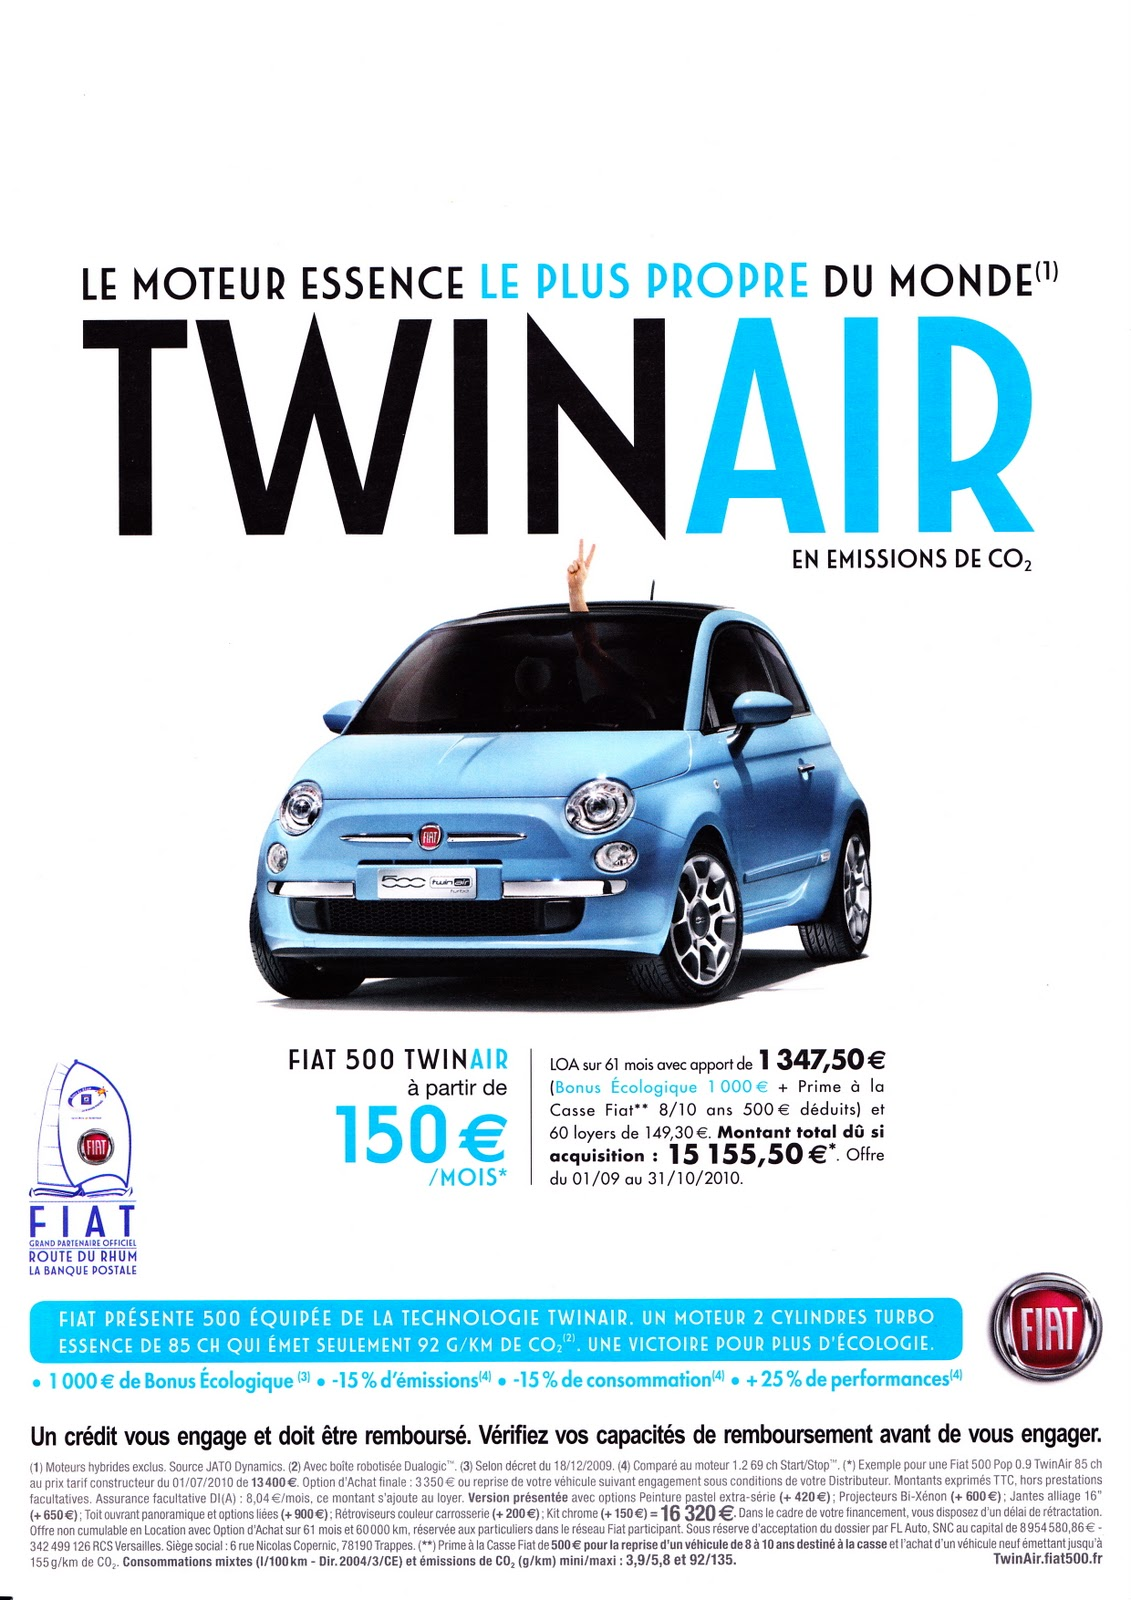 la fiat 500 twinair un moteur r volutionnaire vert mongr. Black Bedroom Furniture Sets. Home Design Ideas